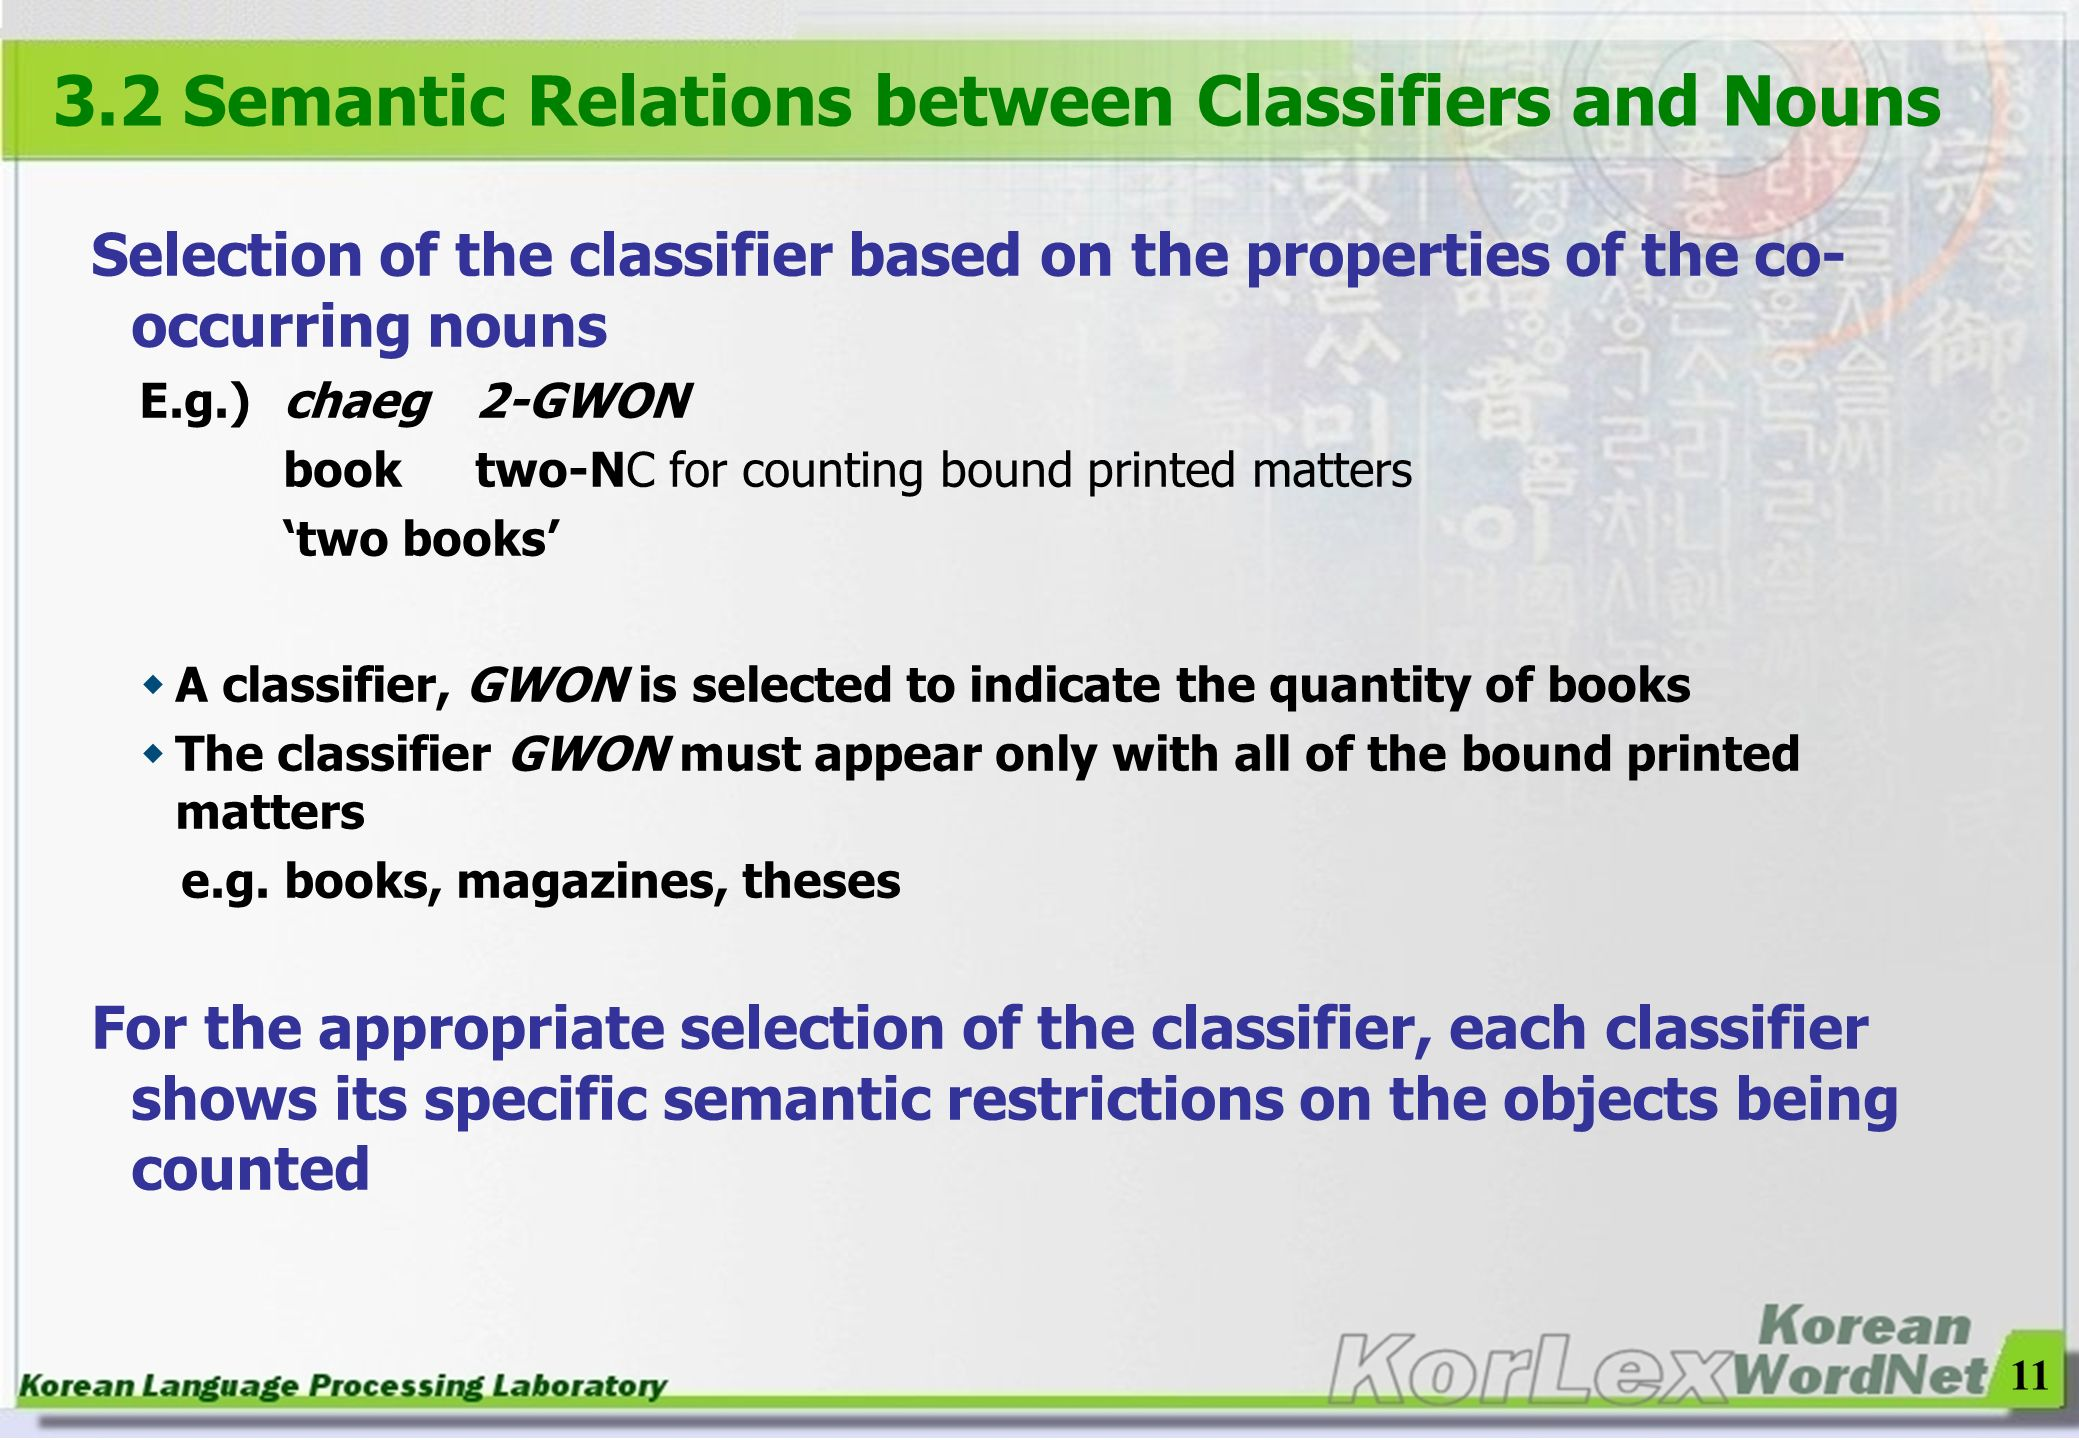 3.2 Semantic Relations between Classifiers and Nouns